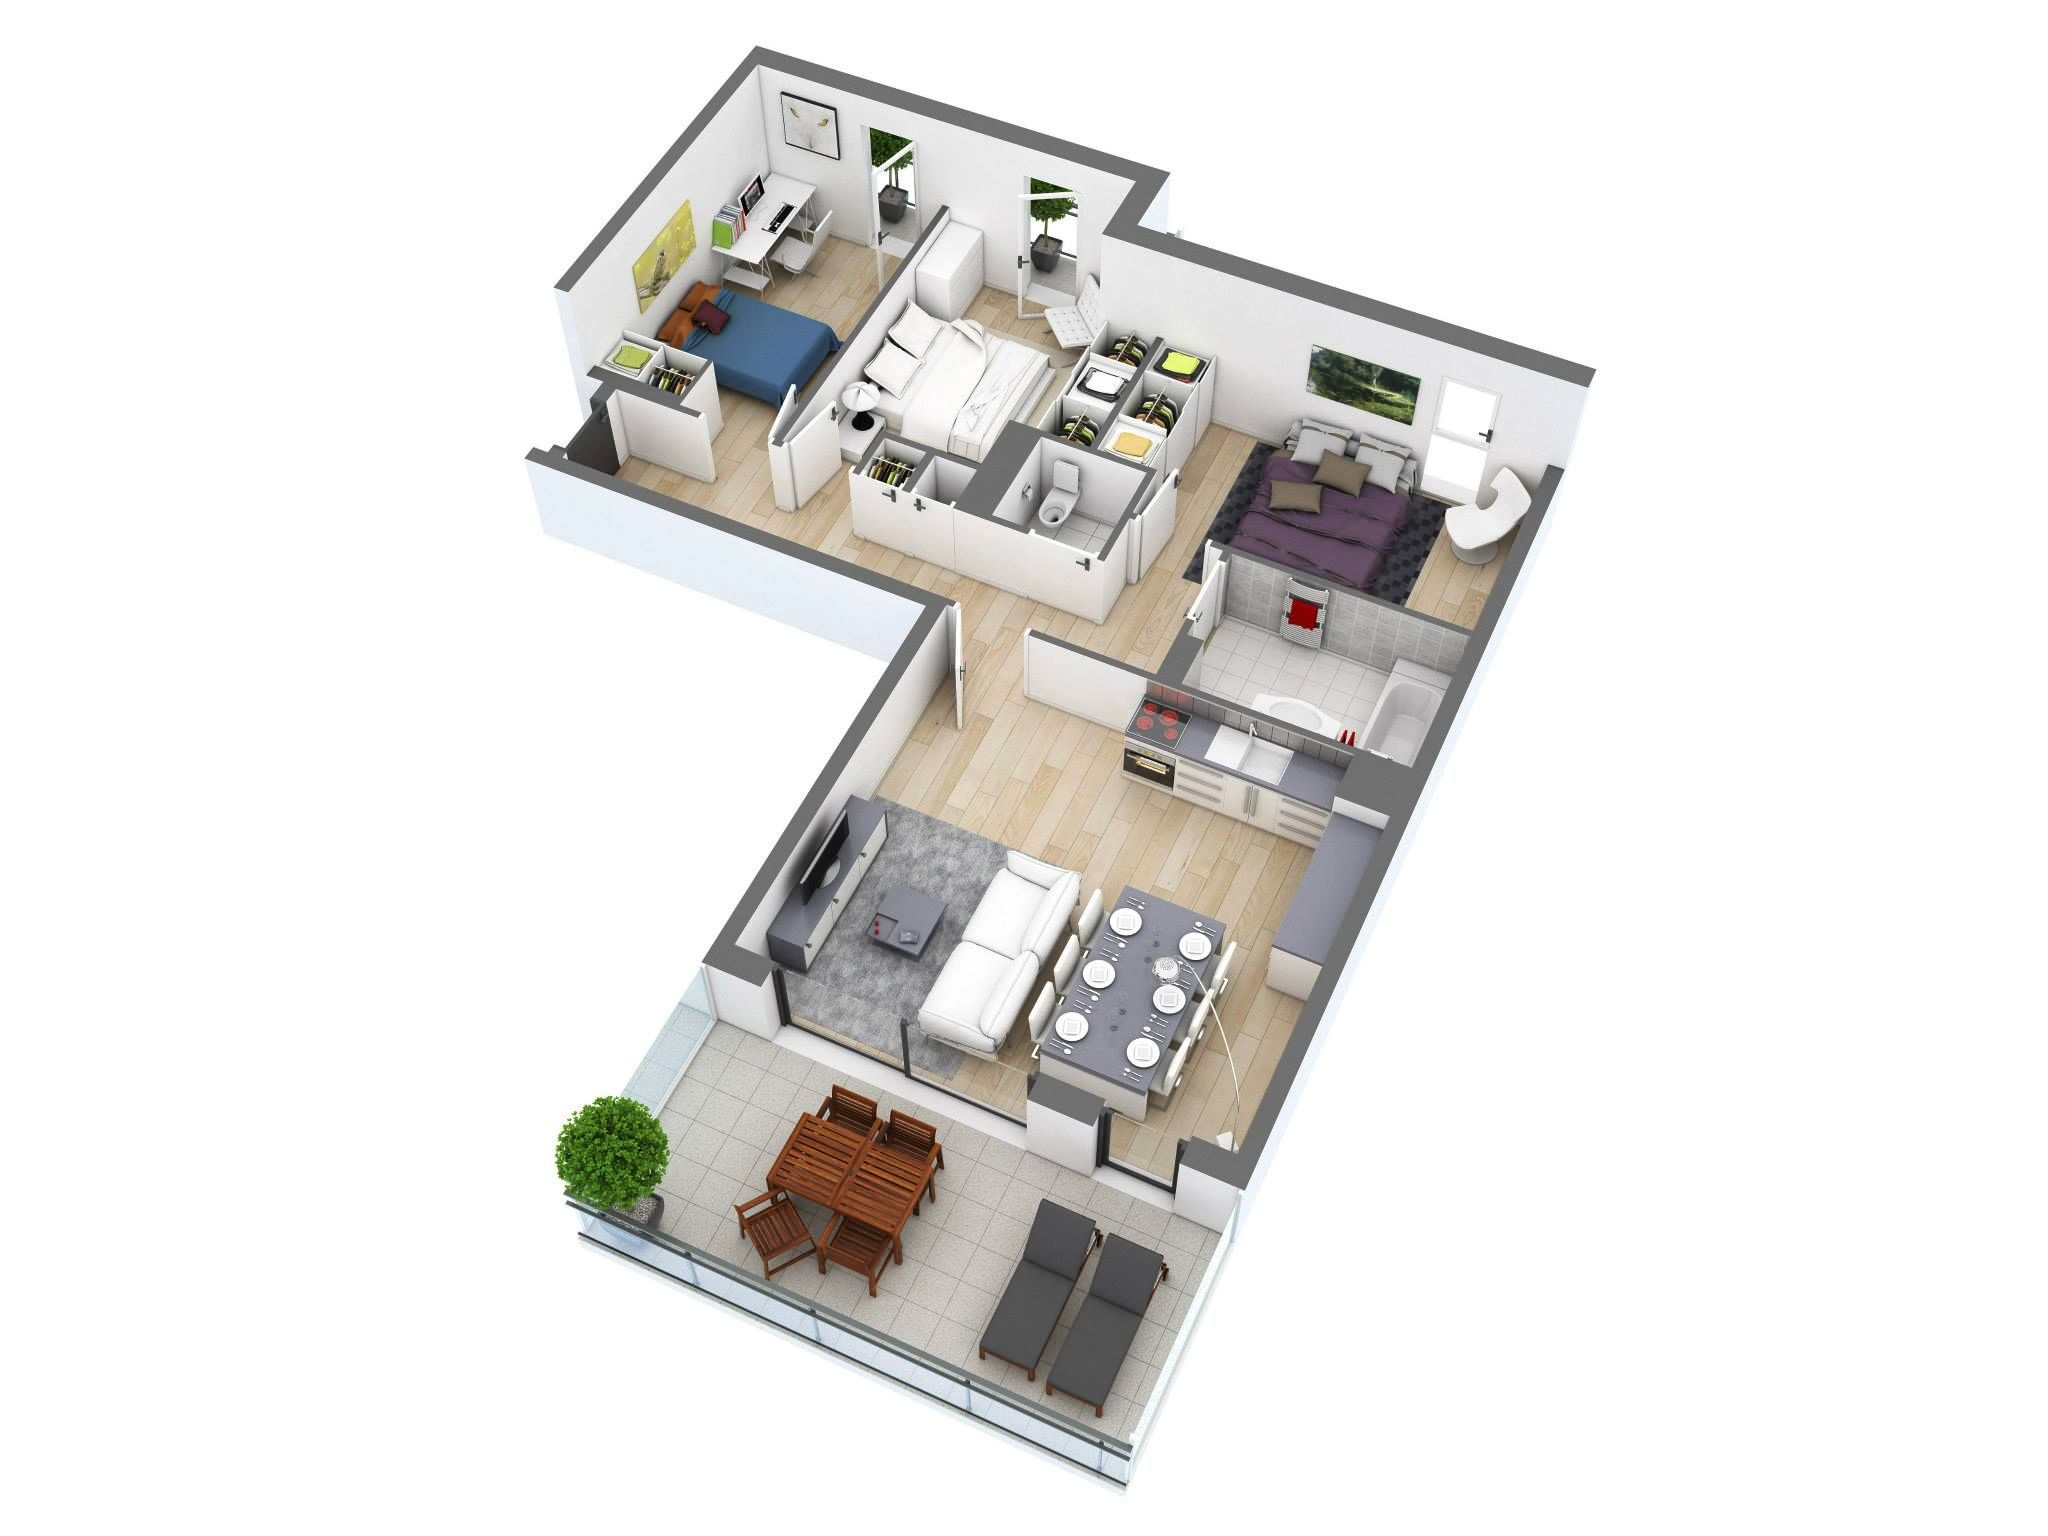 https://cdn.homedit.com/wp-content/uploads/2011/04/shared-areas-3-rooms-floor-plan.jpg